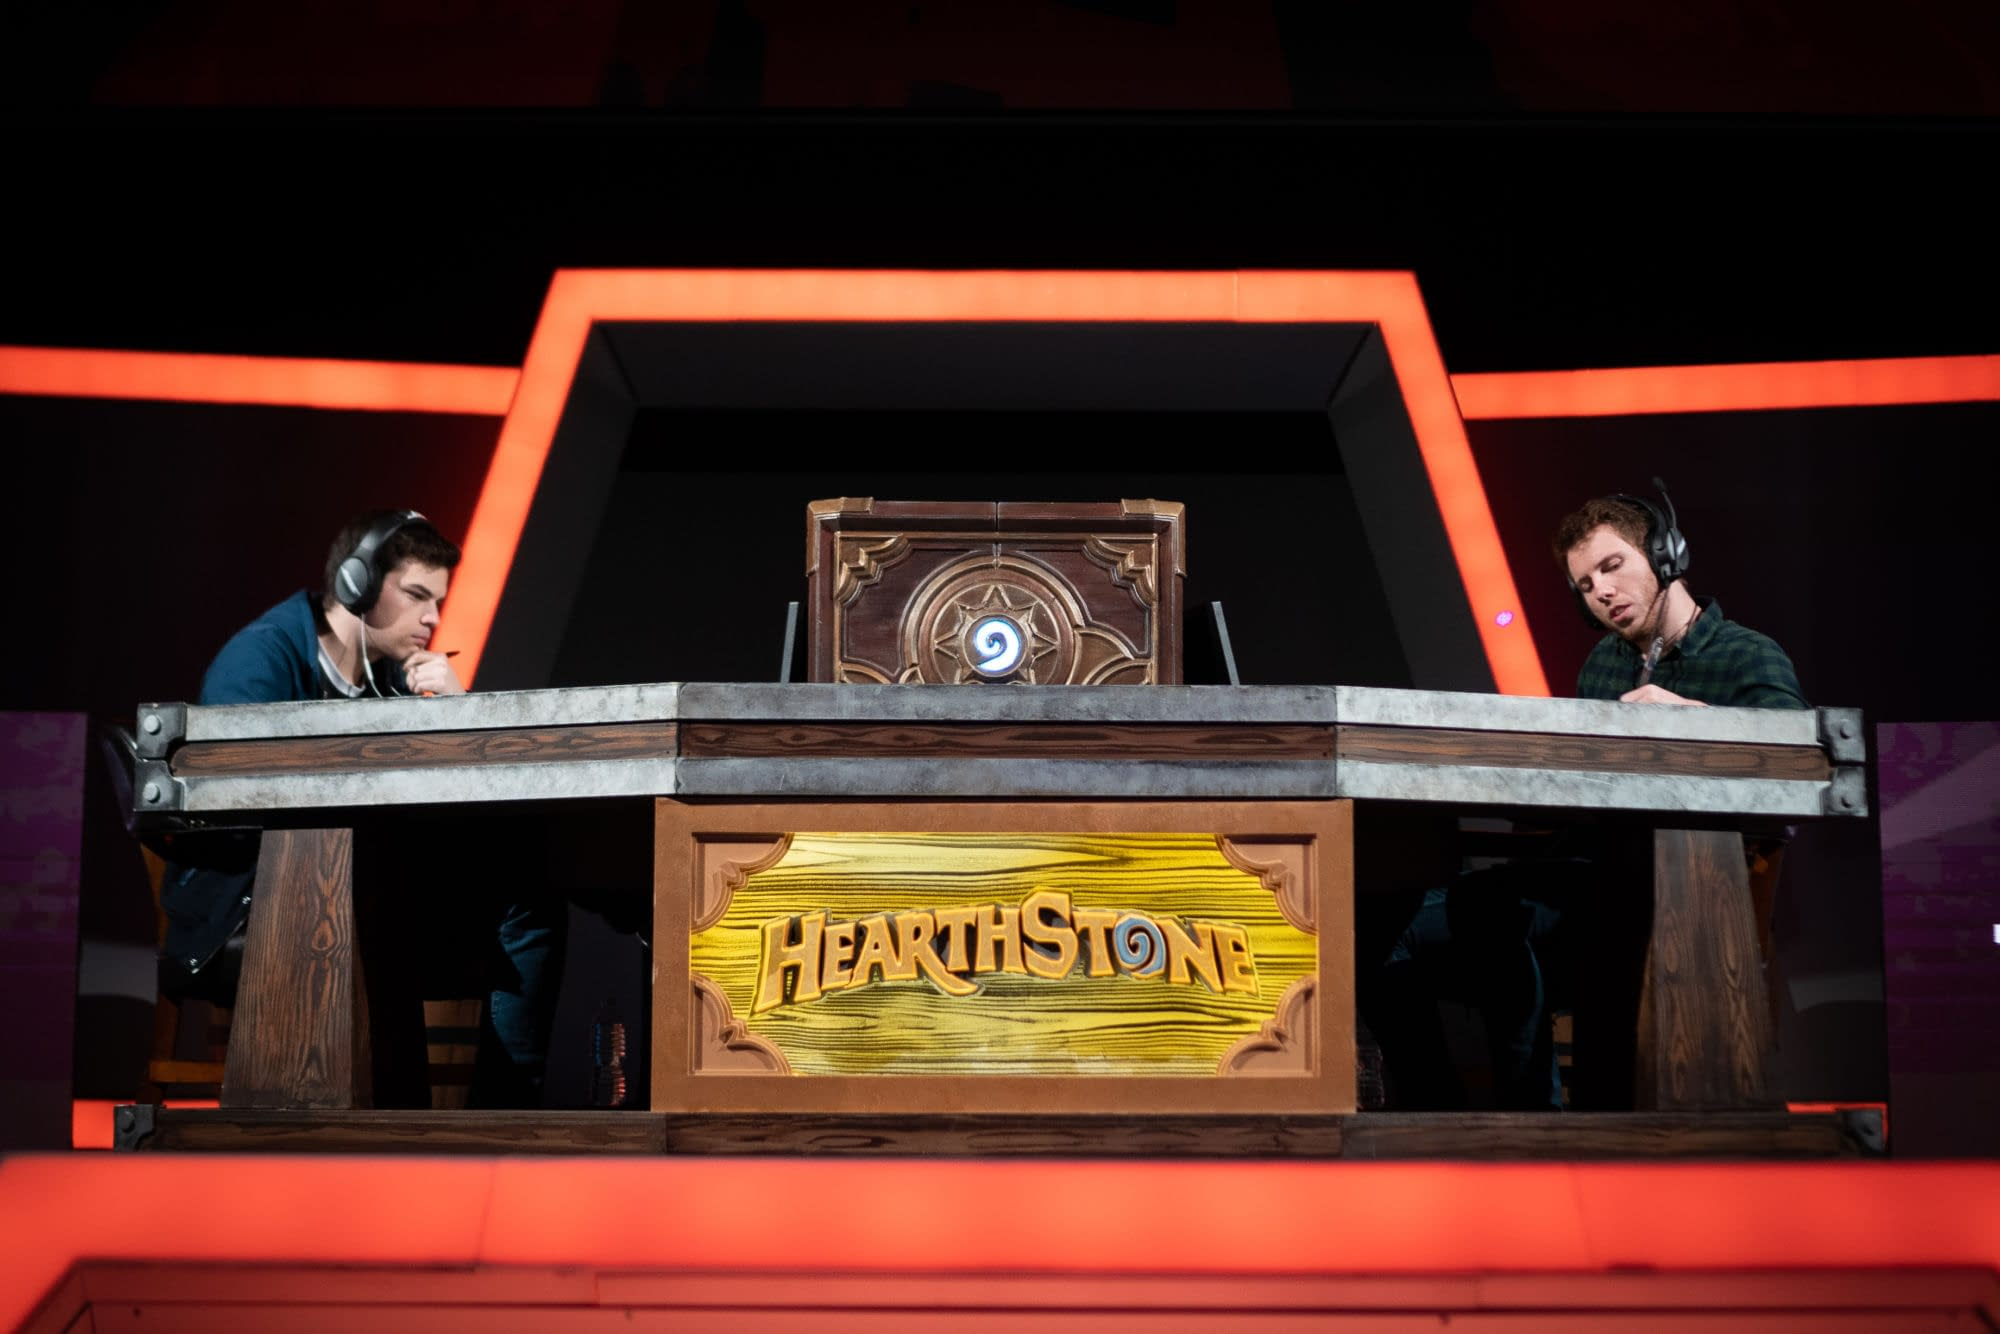 The Next Two Hearthstone Masters Tour Events Will Be Online-Only